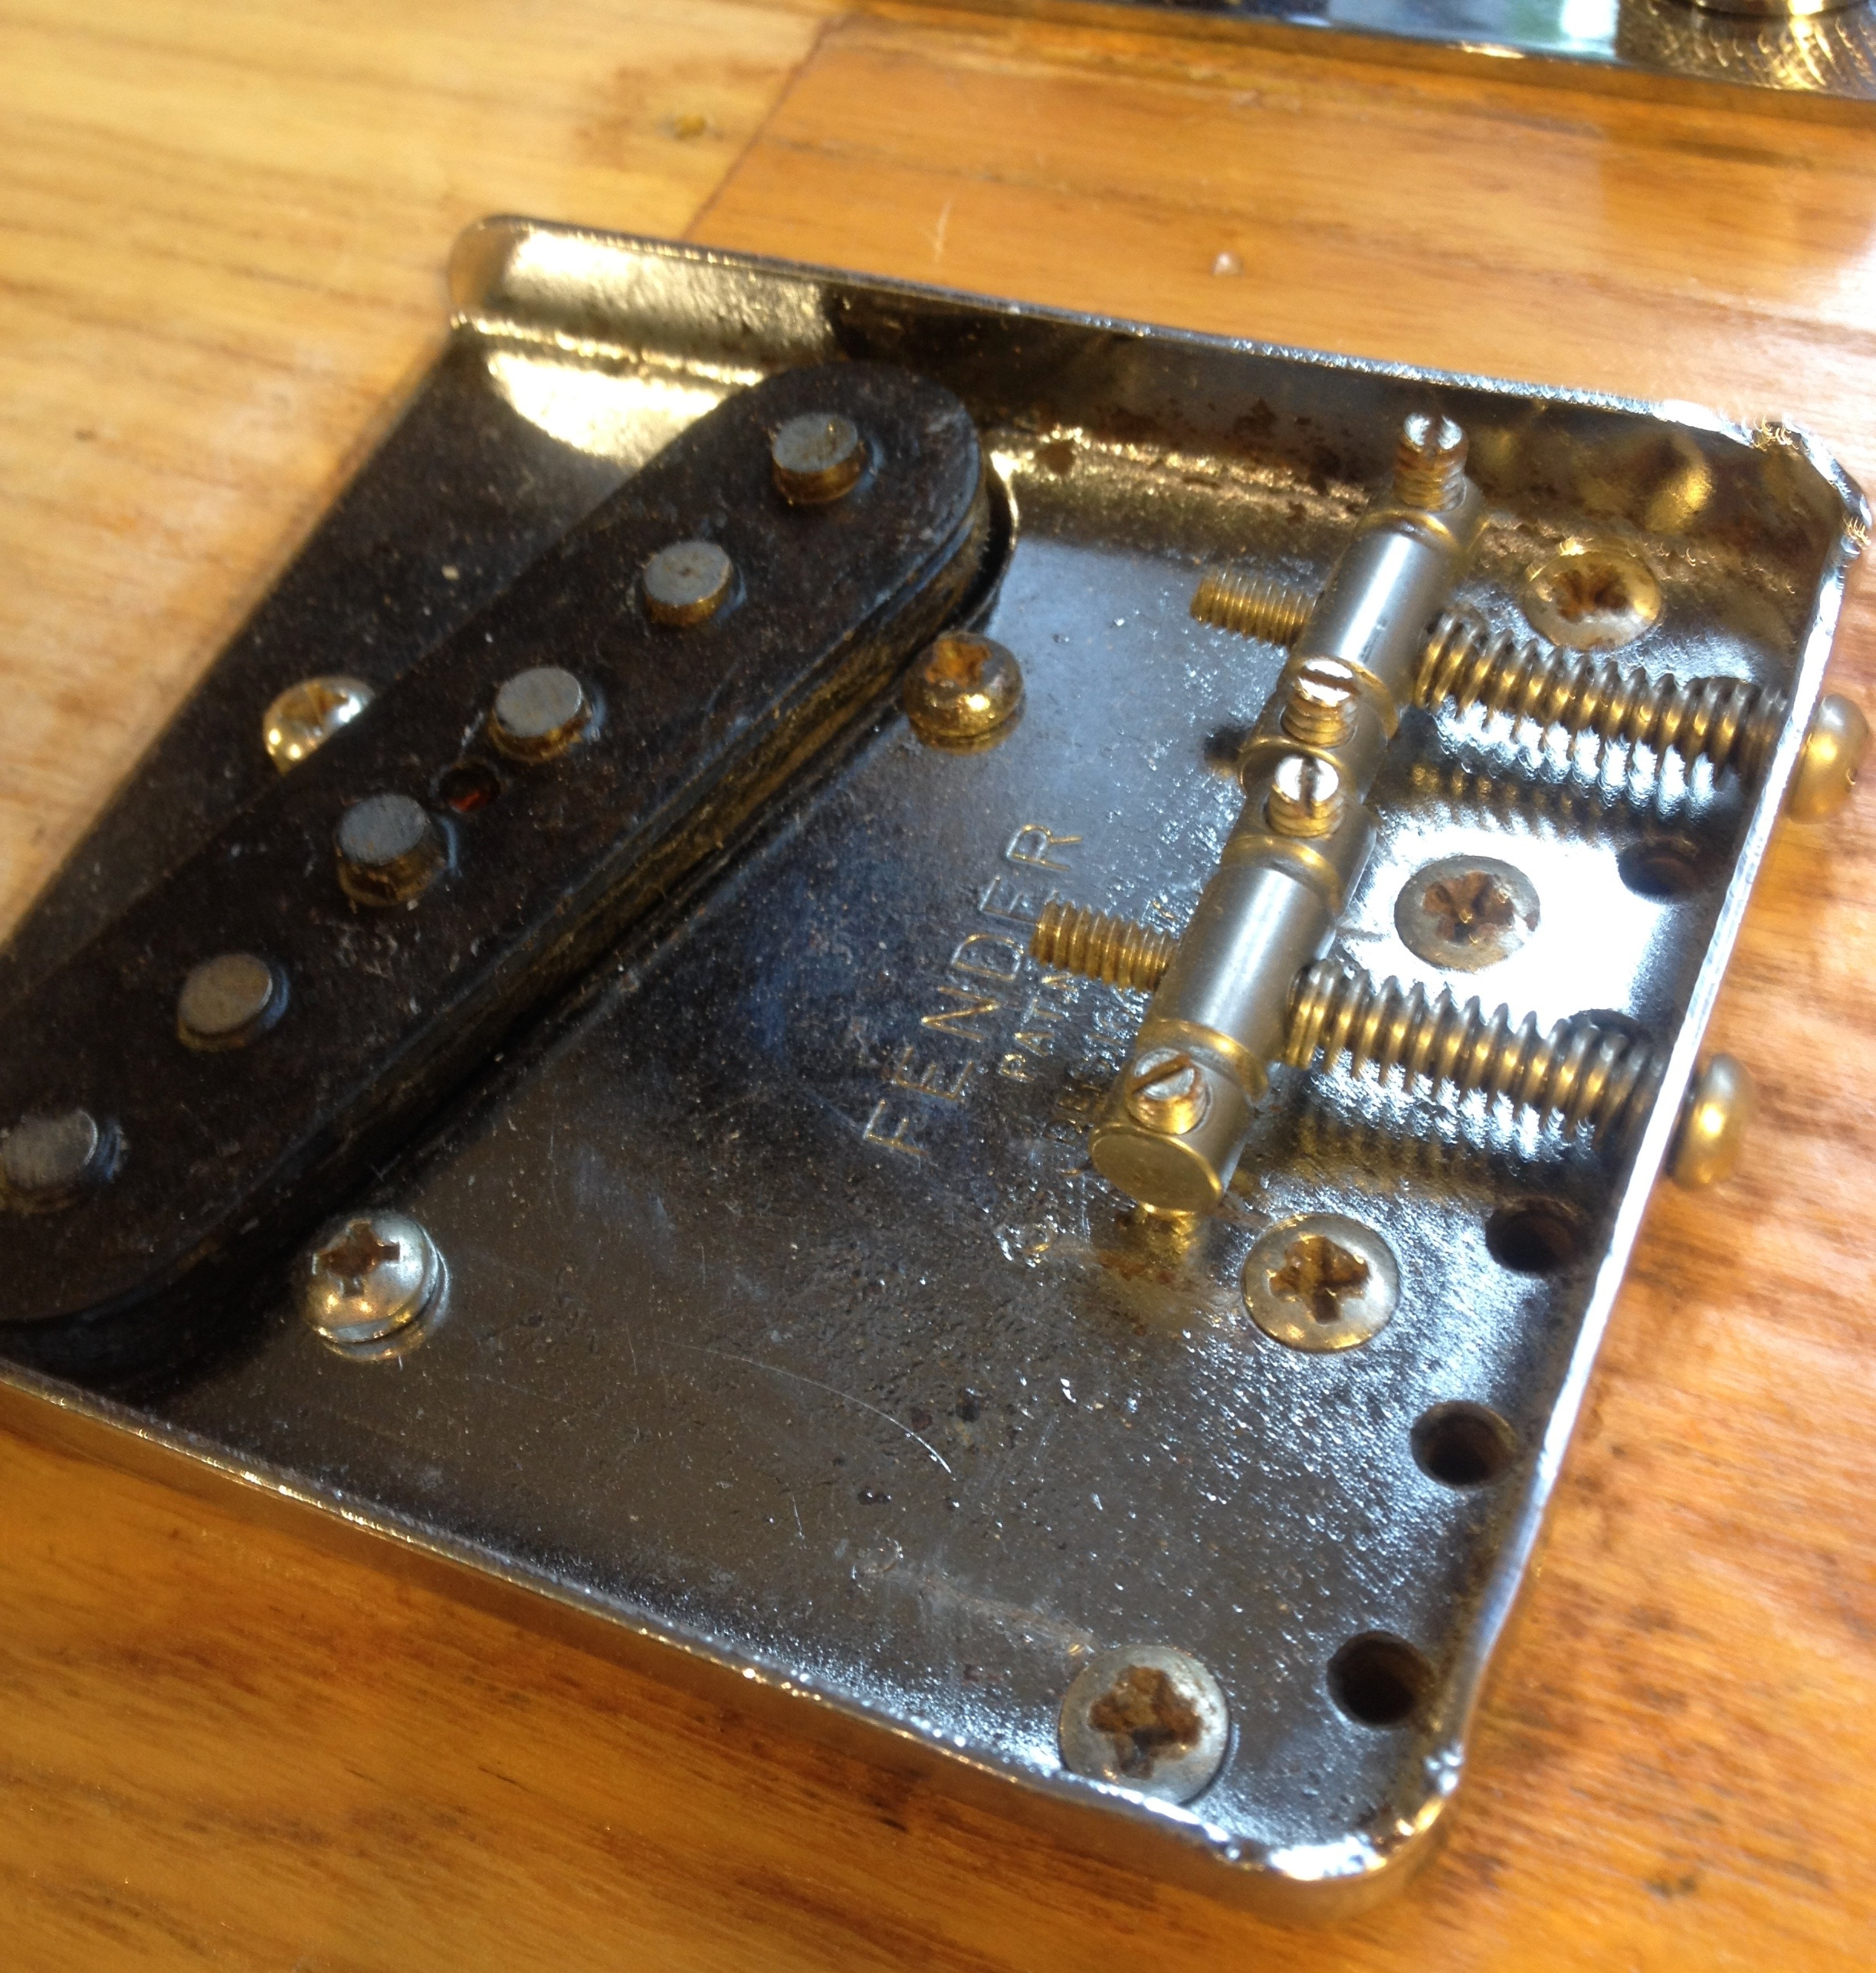 Fender Telecaster from 1973 with a common issue; a chewed height adjuster on the bridge. Cleared the remains away snd now you could hardly tell there was ever a problem.